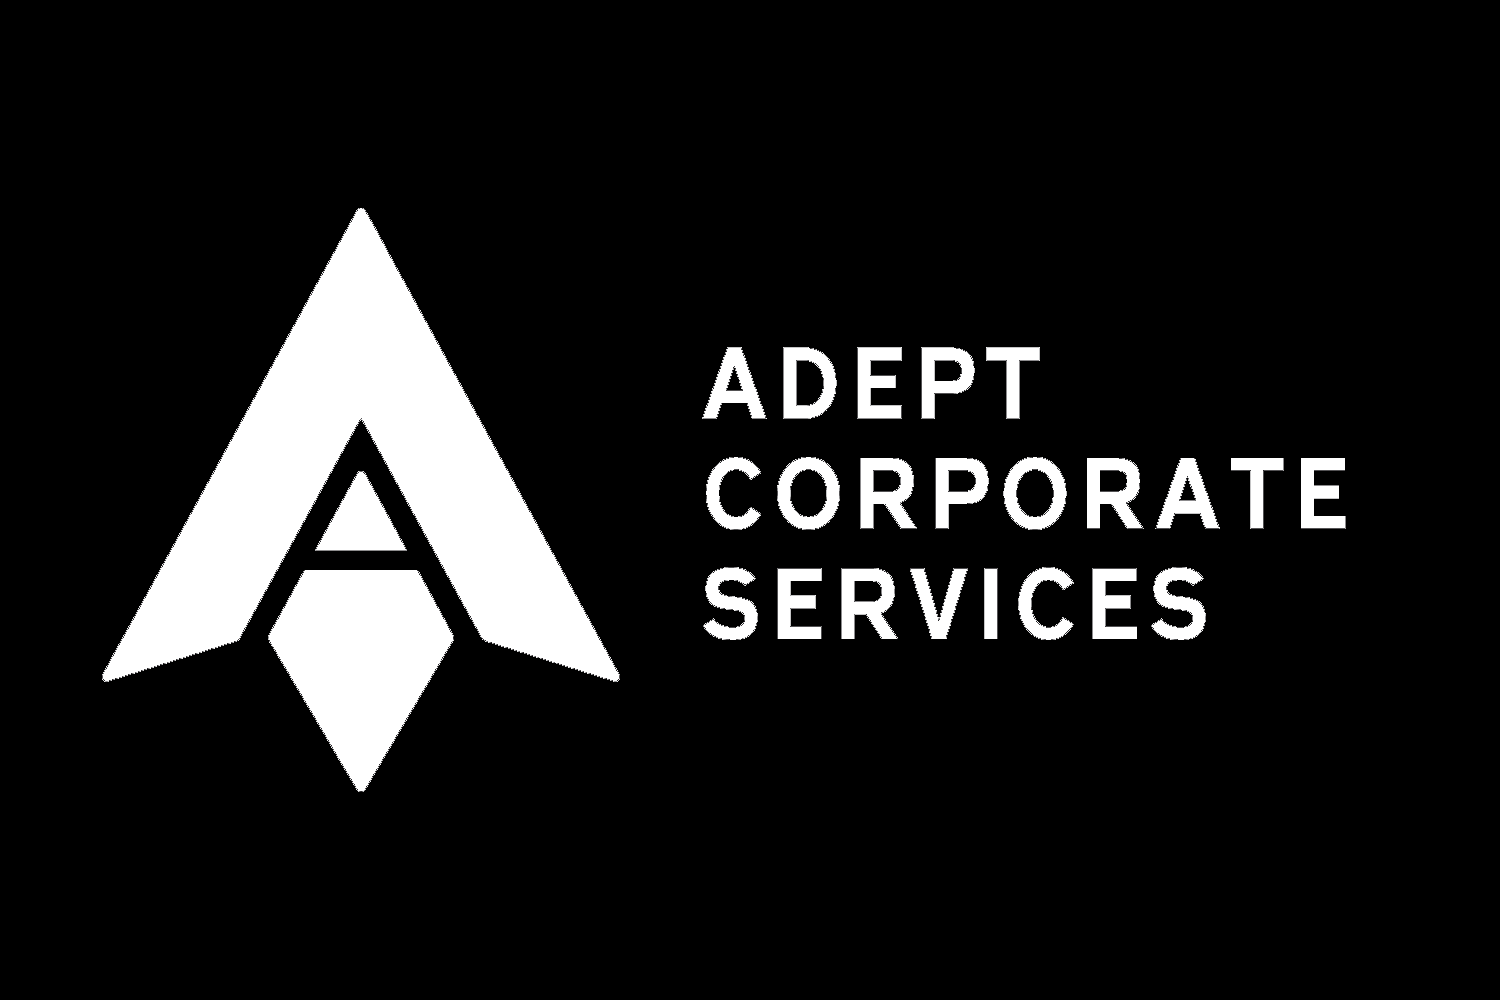 Adept Corporate Services